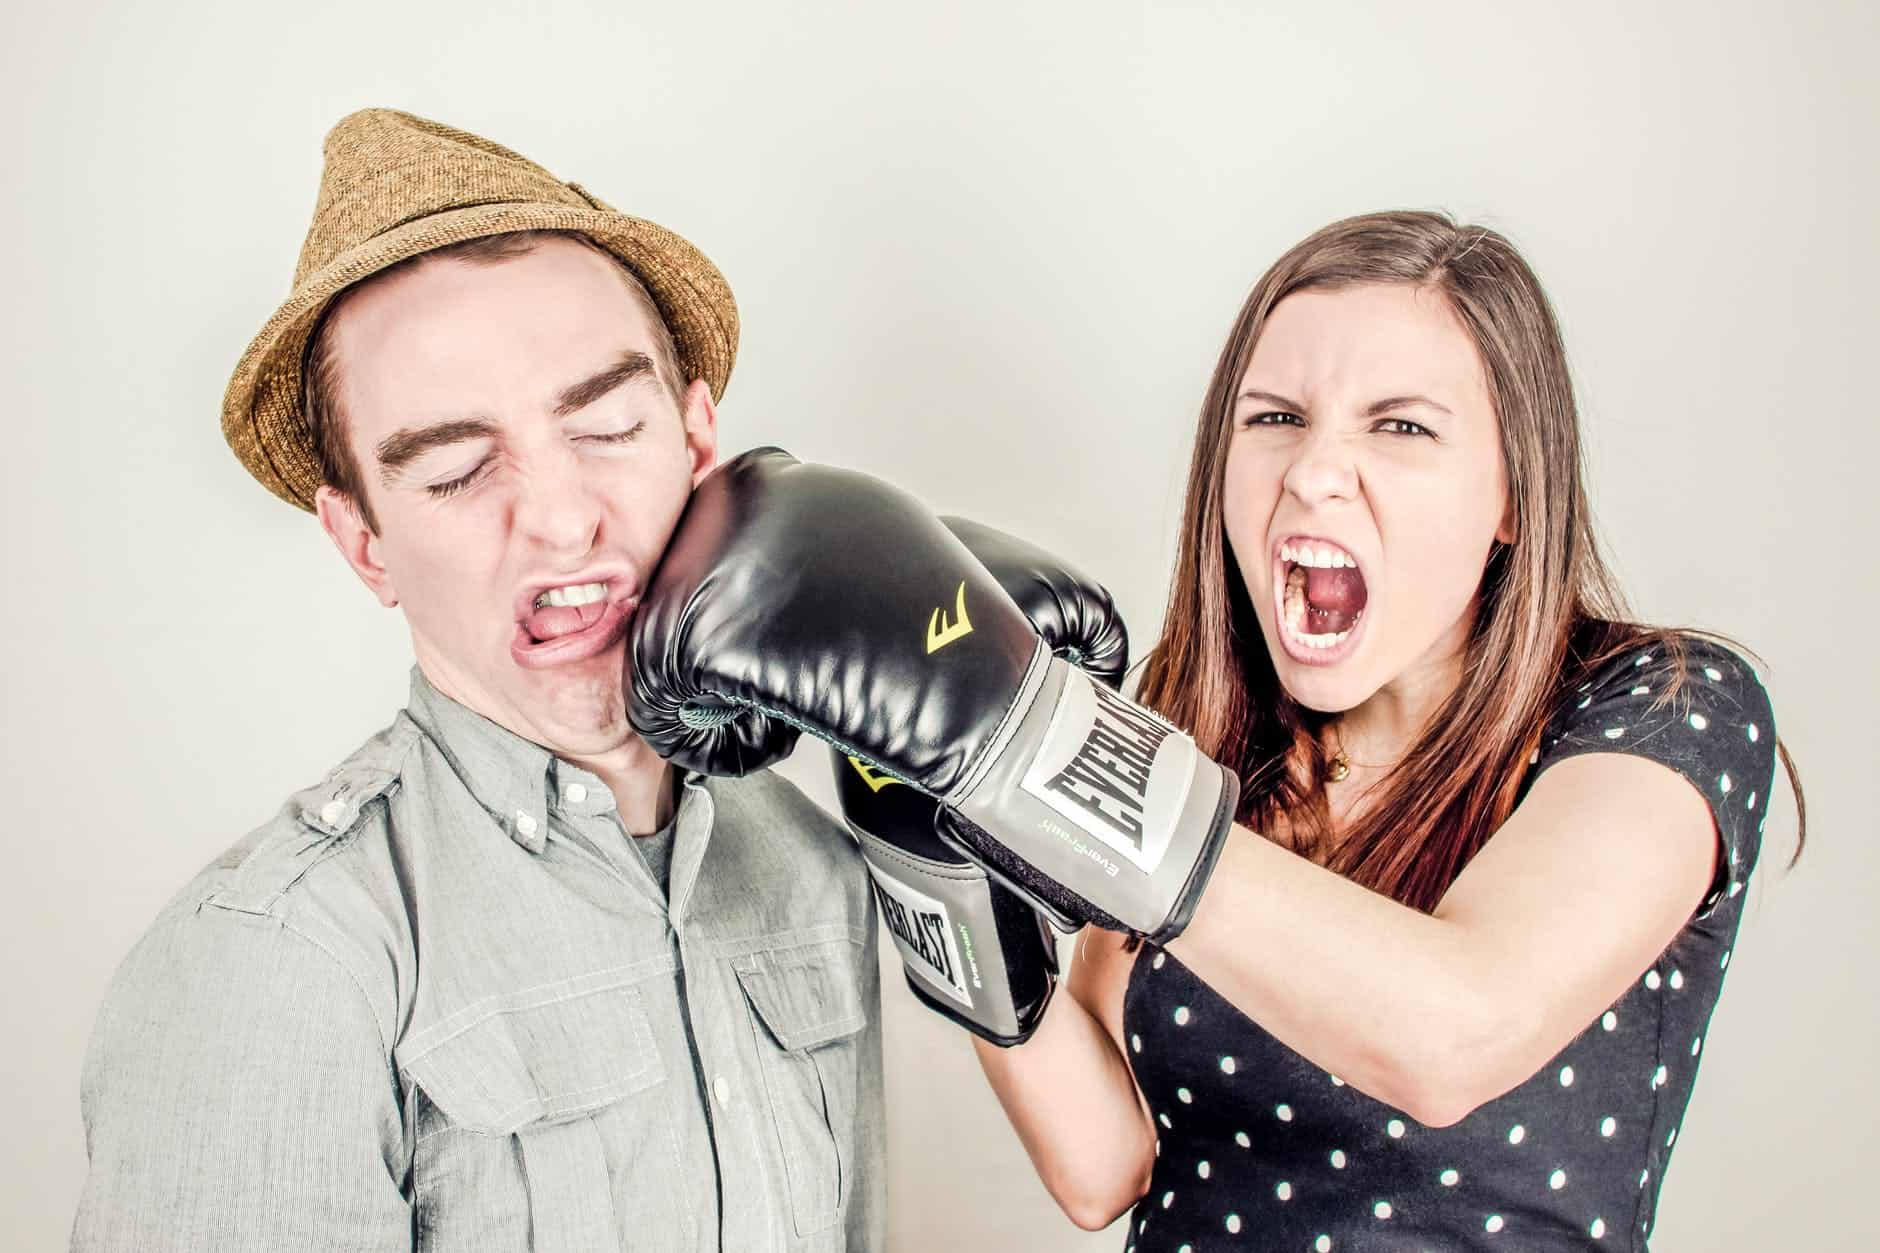 Check Dealing With Anger Reveals What Type Of Personality 4